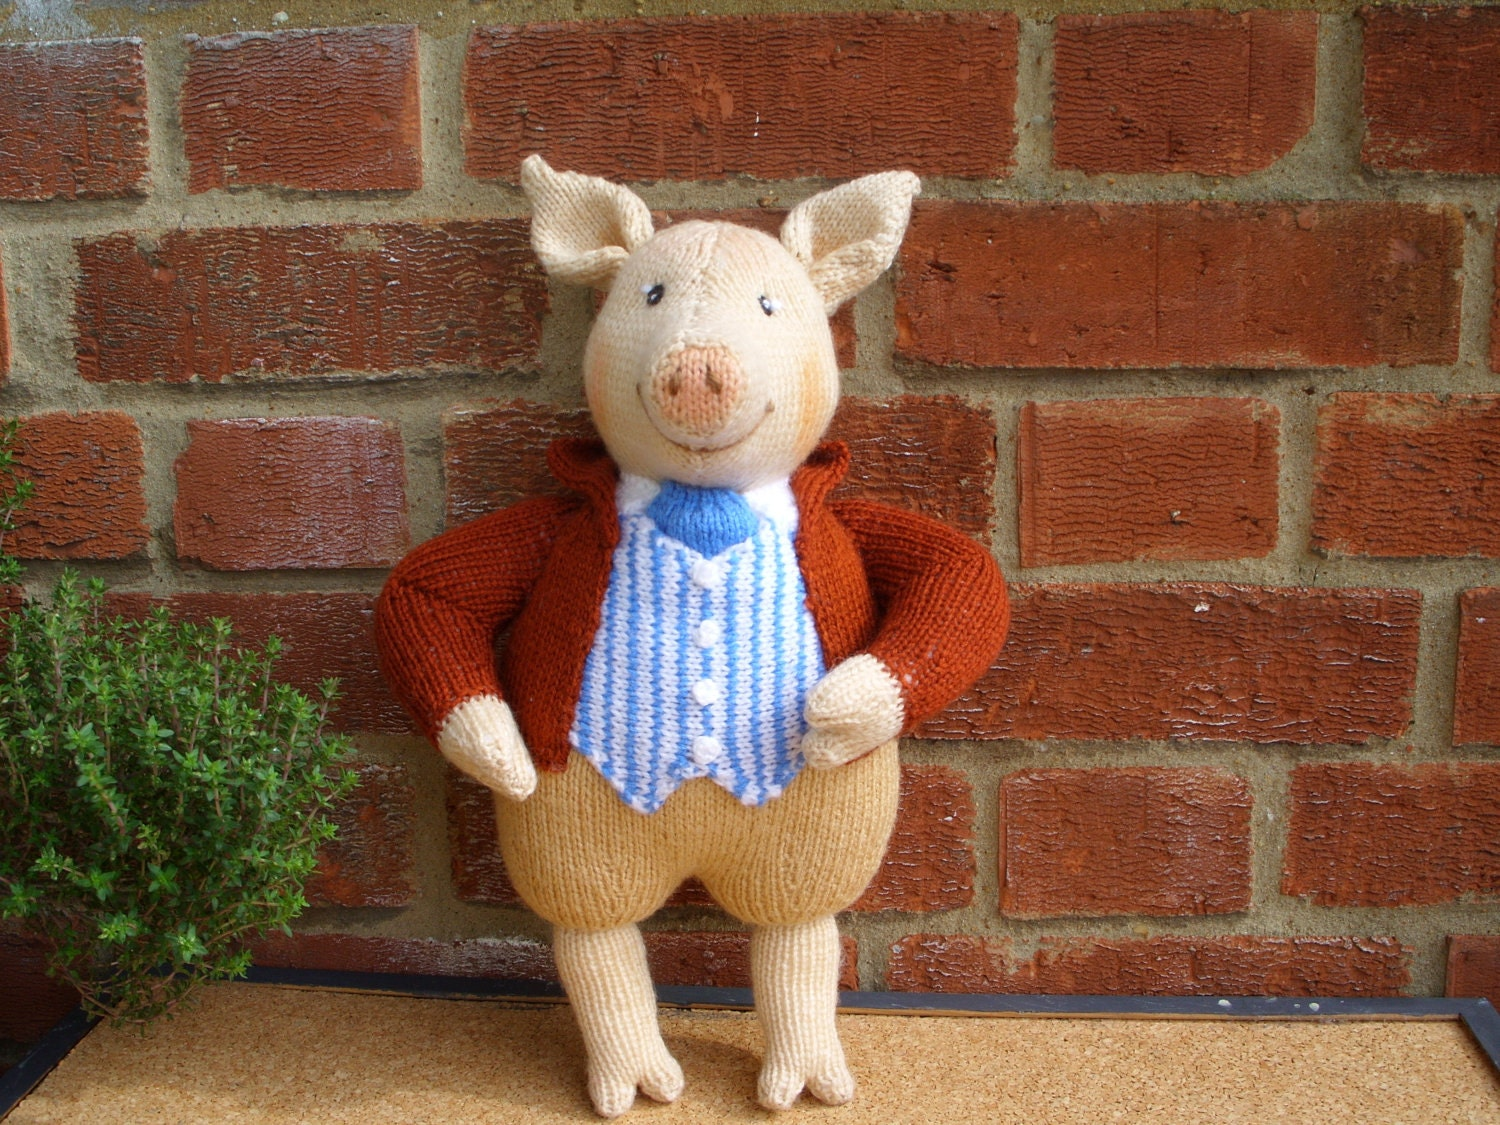 Peter Rabbit Knitting Patterns Free : Hand knitted toy beatrix potter pigling bland by